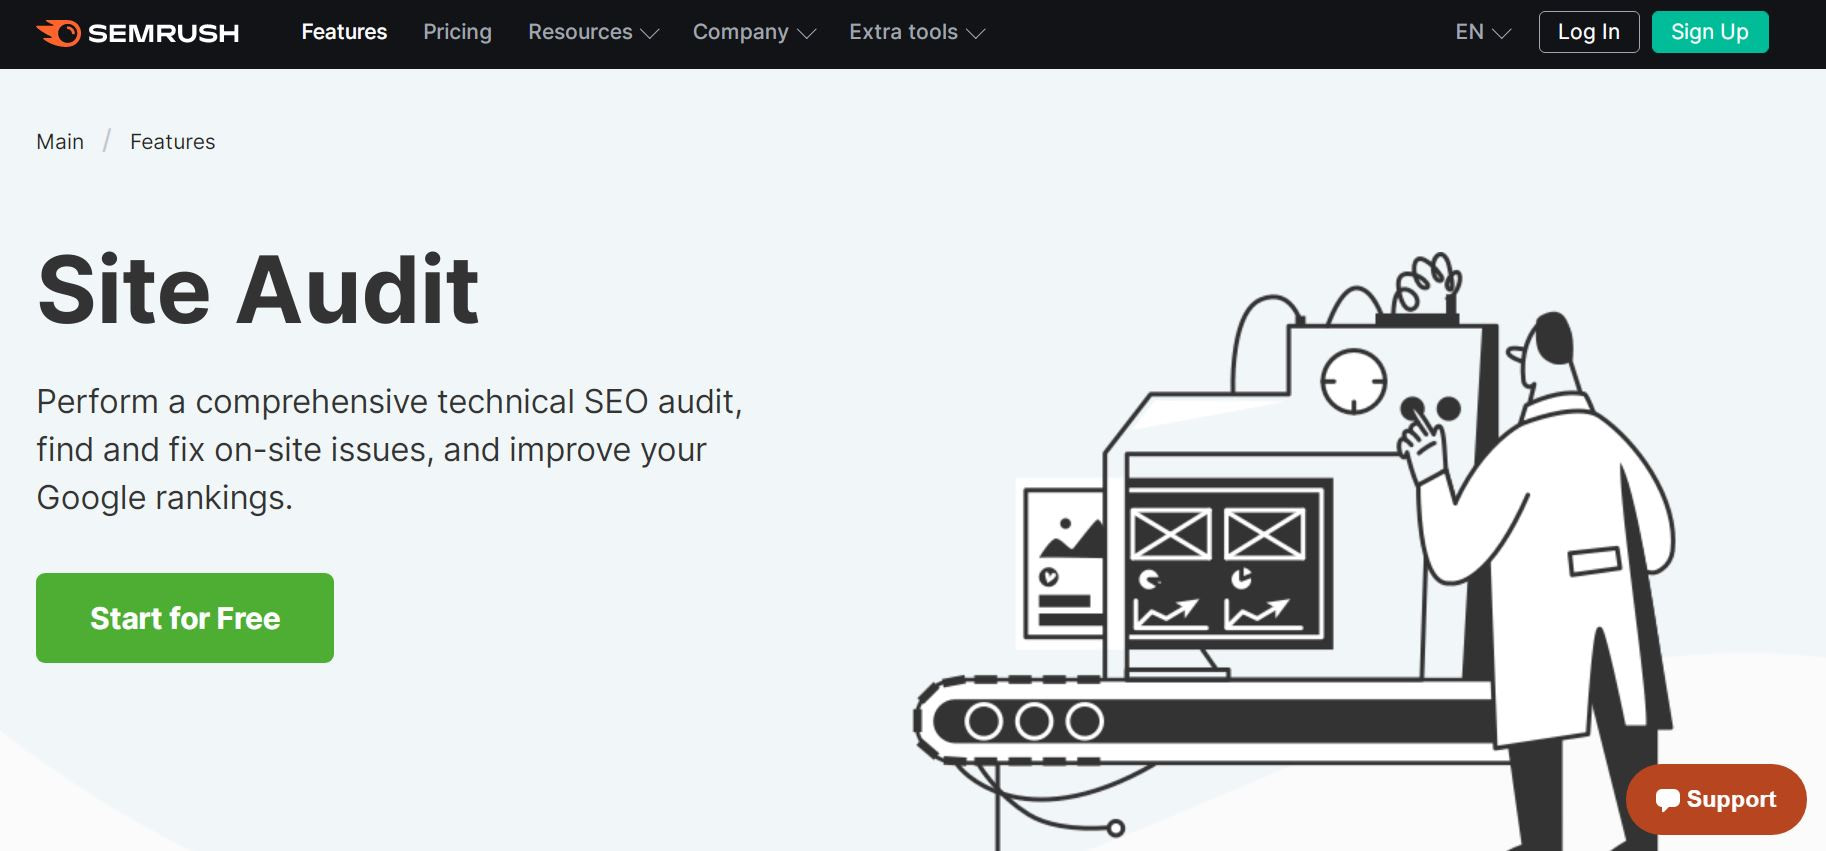 Semrush of the best SEO audit tools